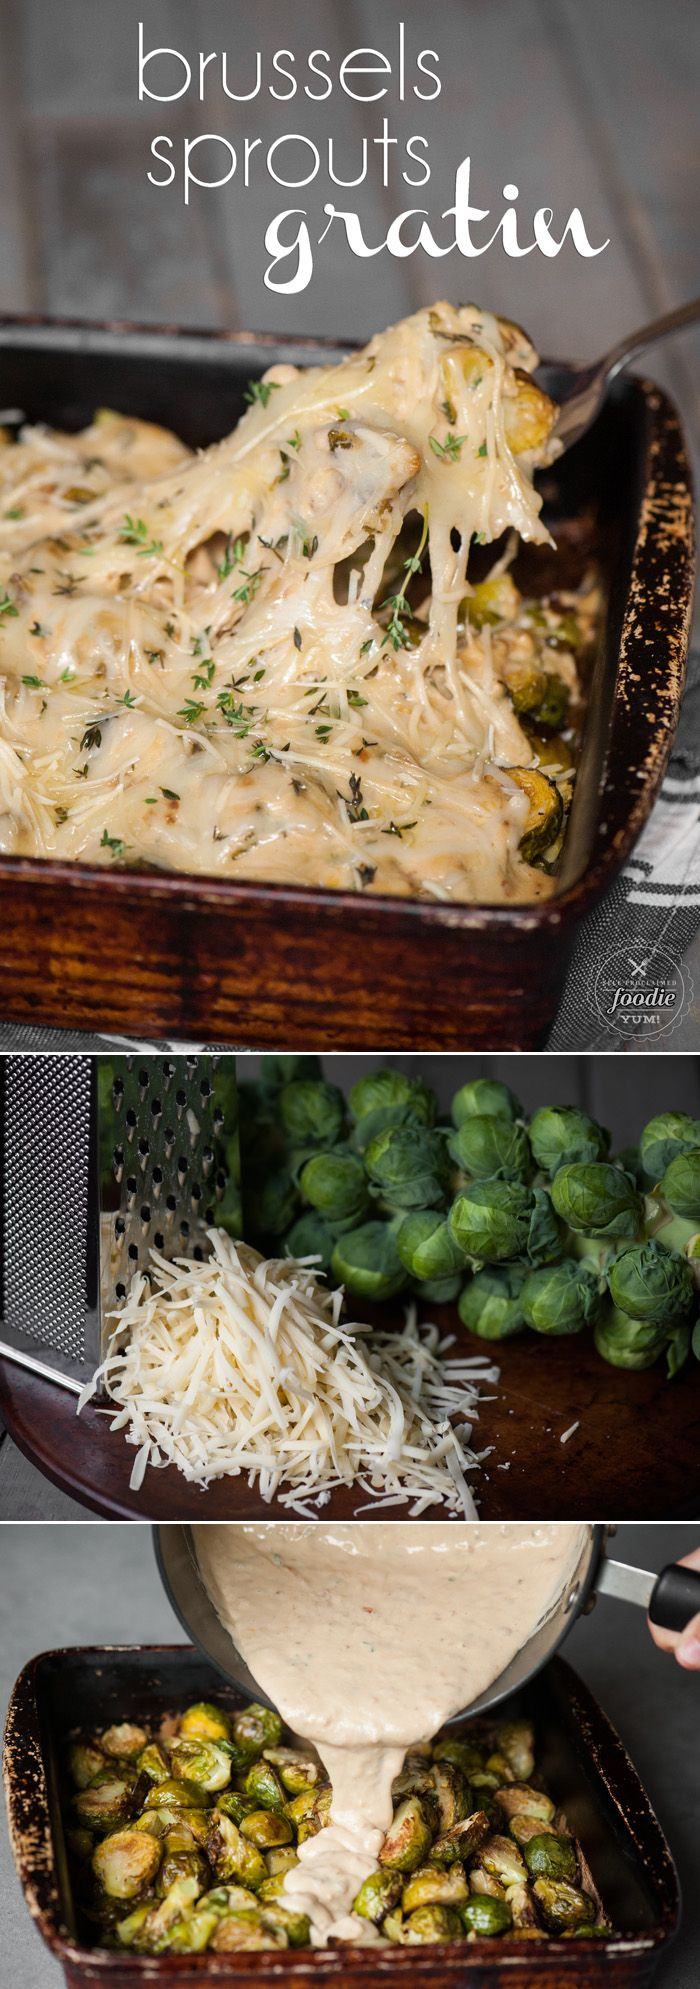 Brussels Sprouts Gratin combines roasted fresh brussels sprouts with a creamy gruyere cheese sauce to create a heavenly vegetable side dish.